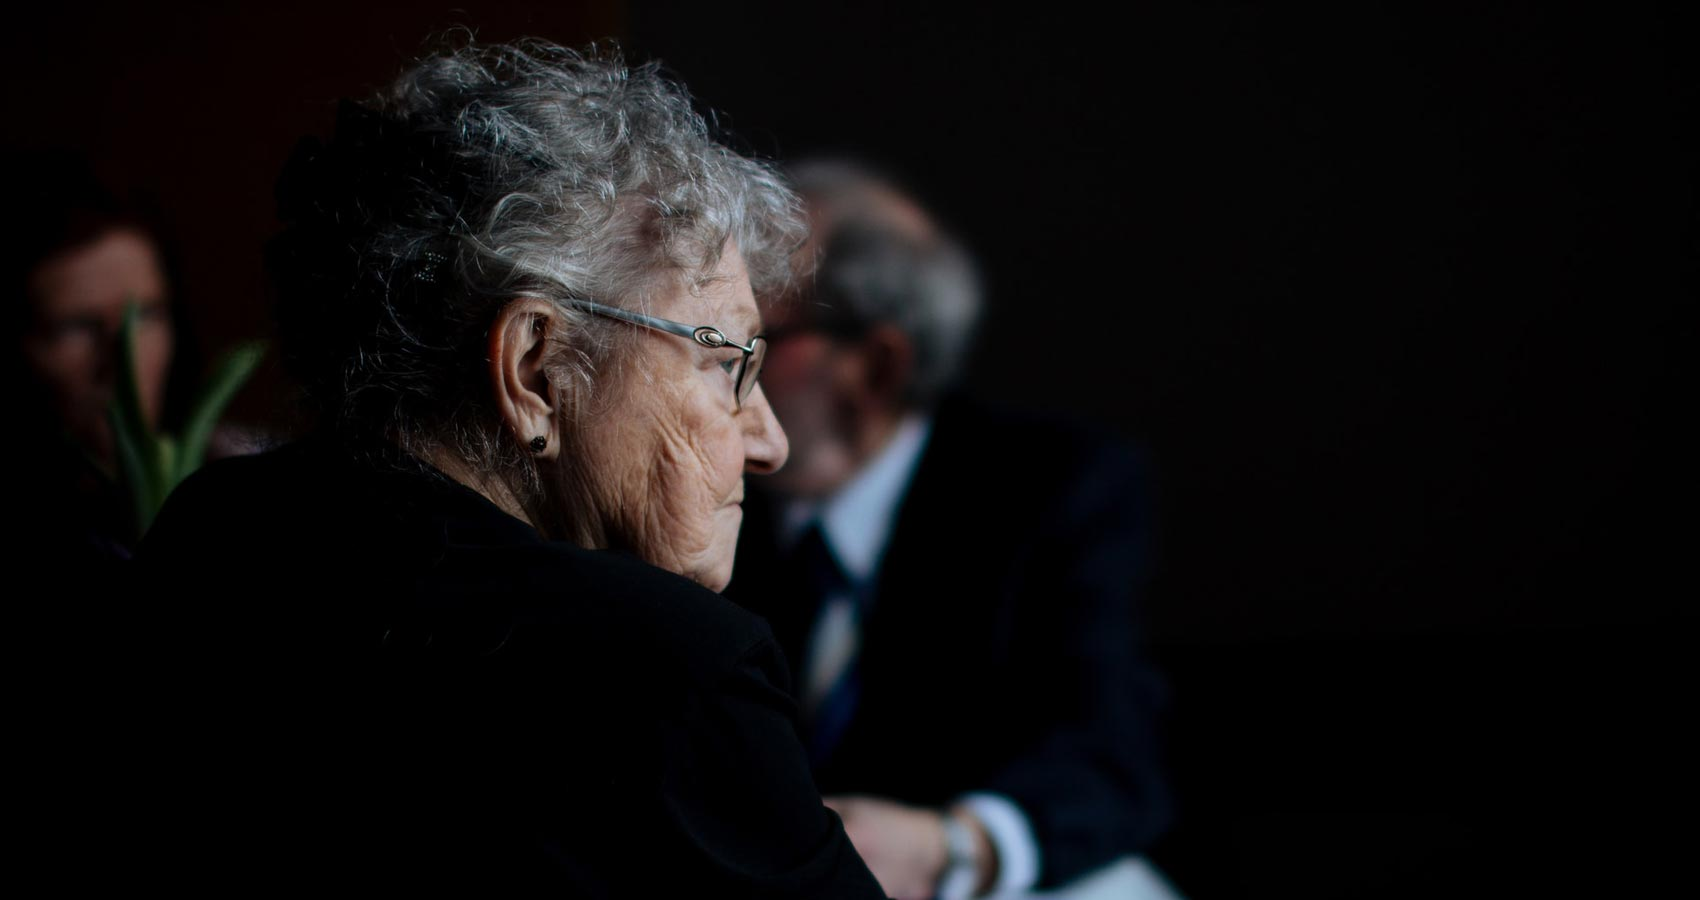 The Aged, a poem by Glynn Sinclare at Spillwords.com